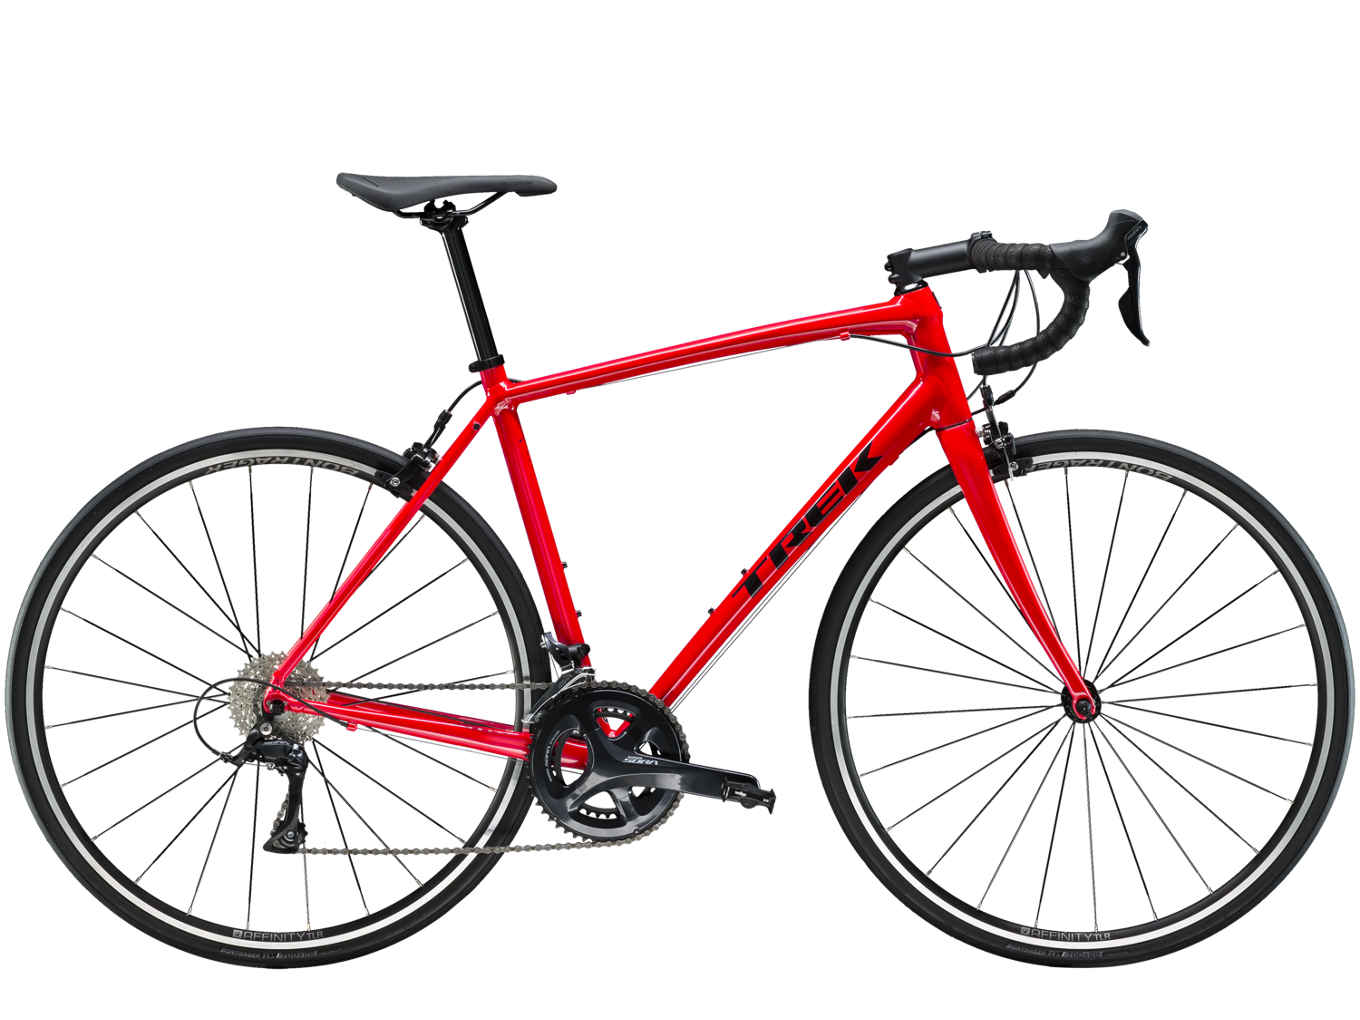 Domane AL 3 is smooth, stable, and confidence-inspiring. It's perfect for new riders and anyone looking to upgrade to a versatile aluminum road bike built for a comfortable riding experience. The quality parts are ready to tackle fast group rides and adventures that stray from the beaten path to rougher roads.